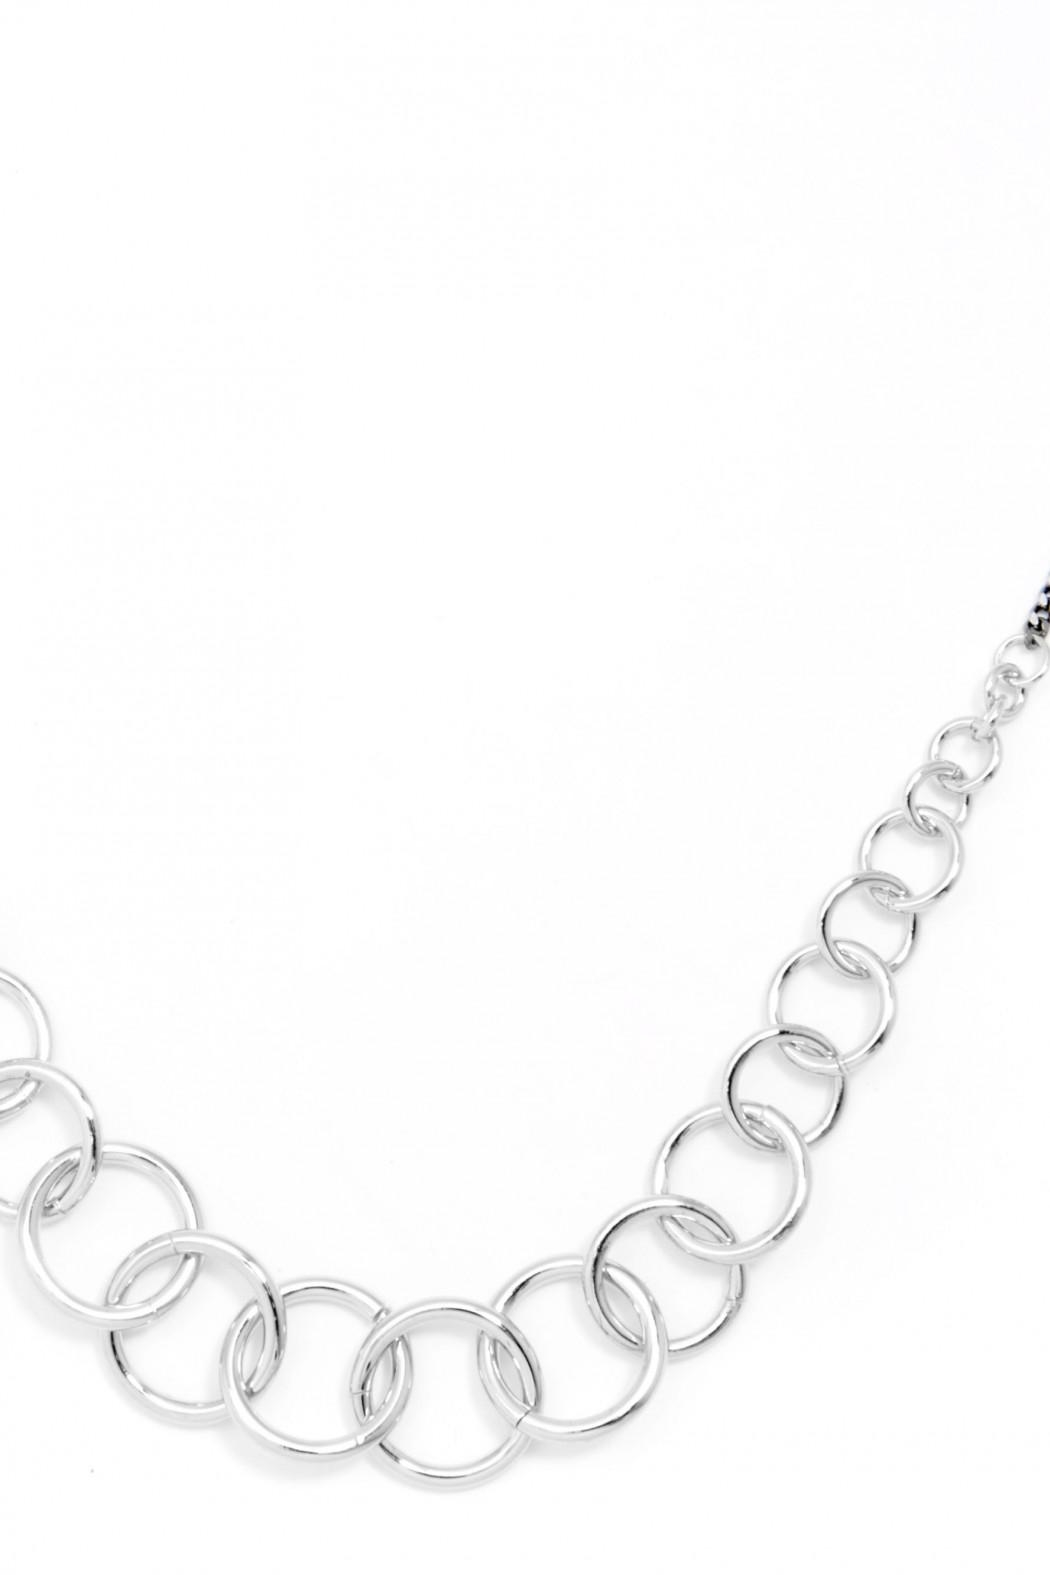 Wild Lilies Jewelry  Silver Chain Necklace - Front Full Image